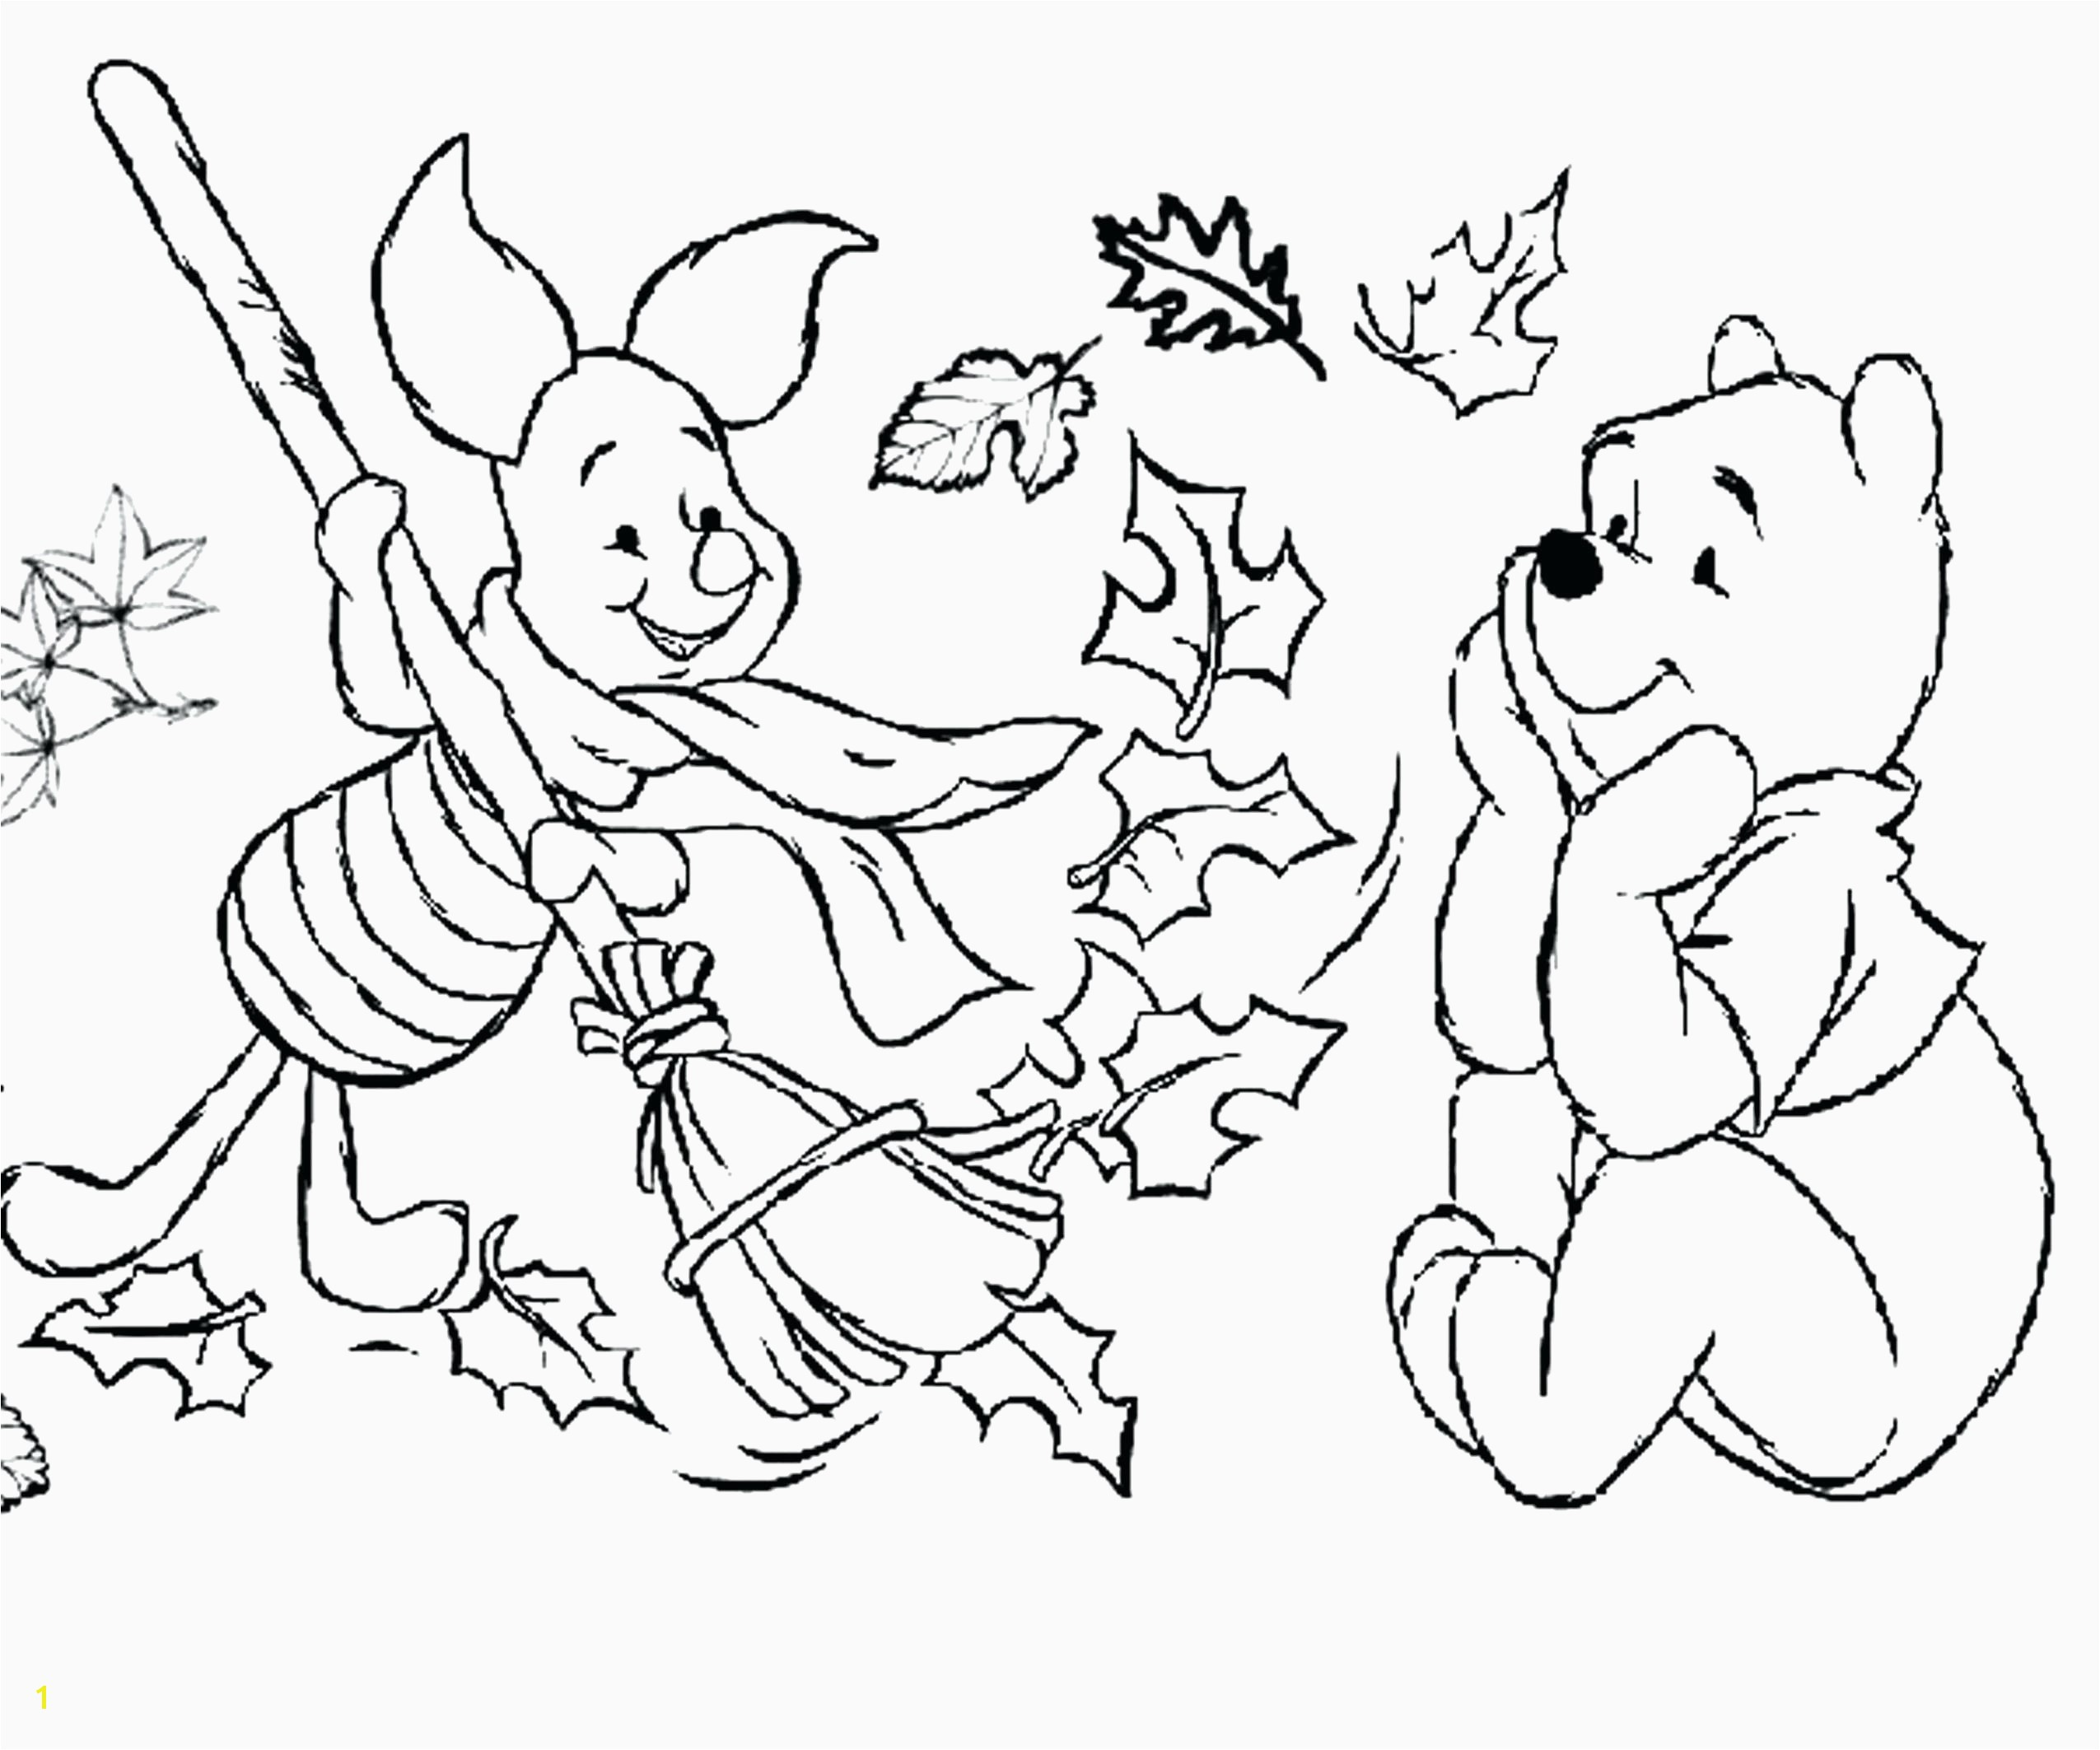 Respect Coloring Sheets Best Cool Coloring Page Unique Witch Coloring Pages New Crayola Pages 0d